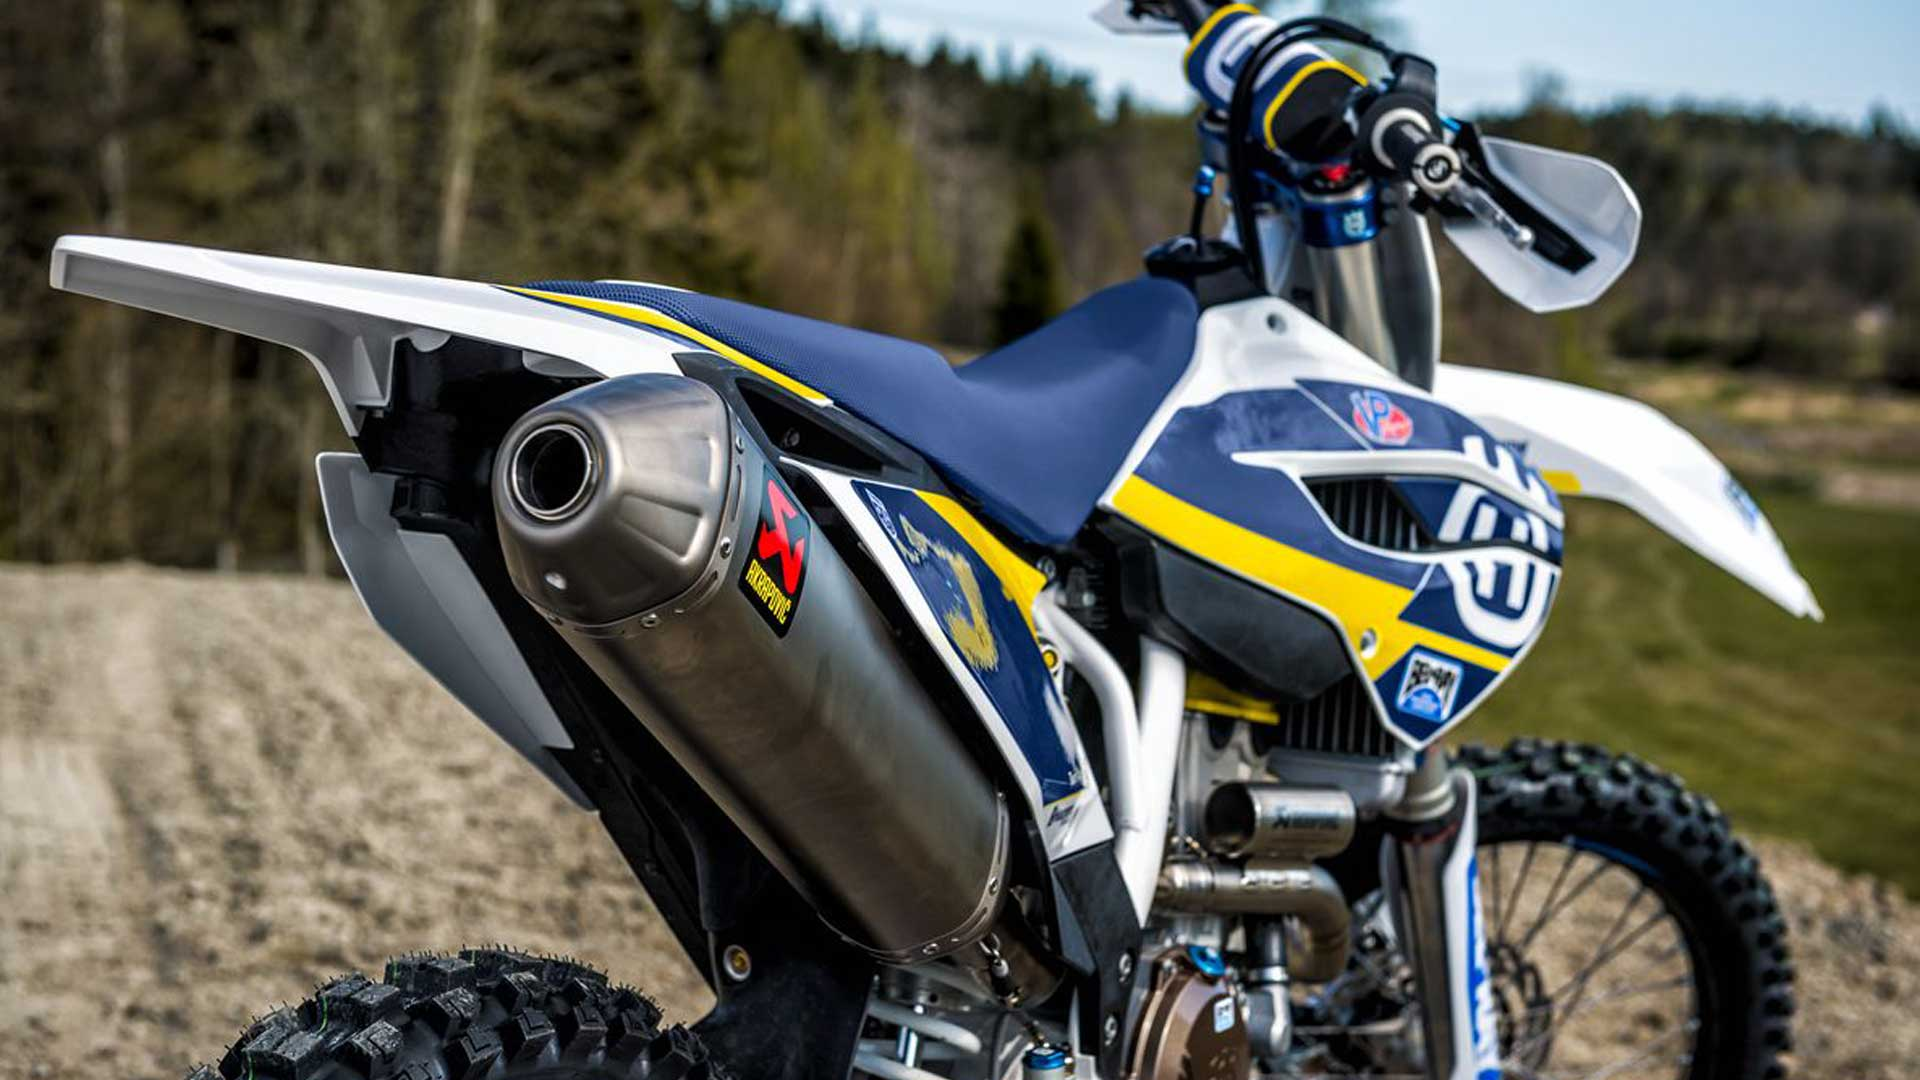 Husqvarna Motorcycles at Midwest RacingWiltshire UK 1920x1080